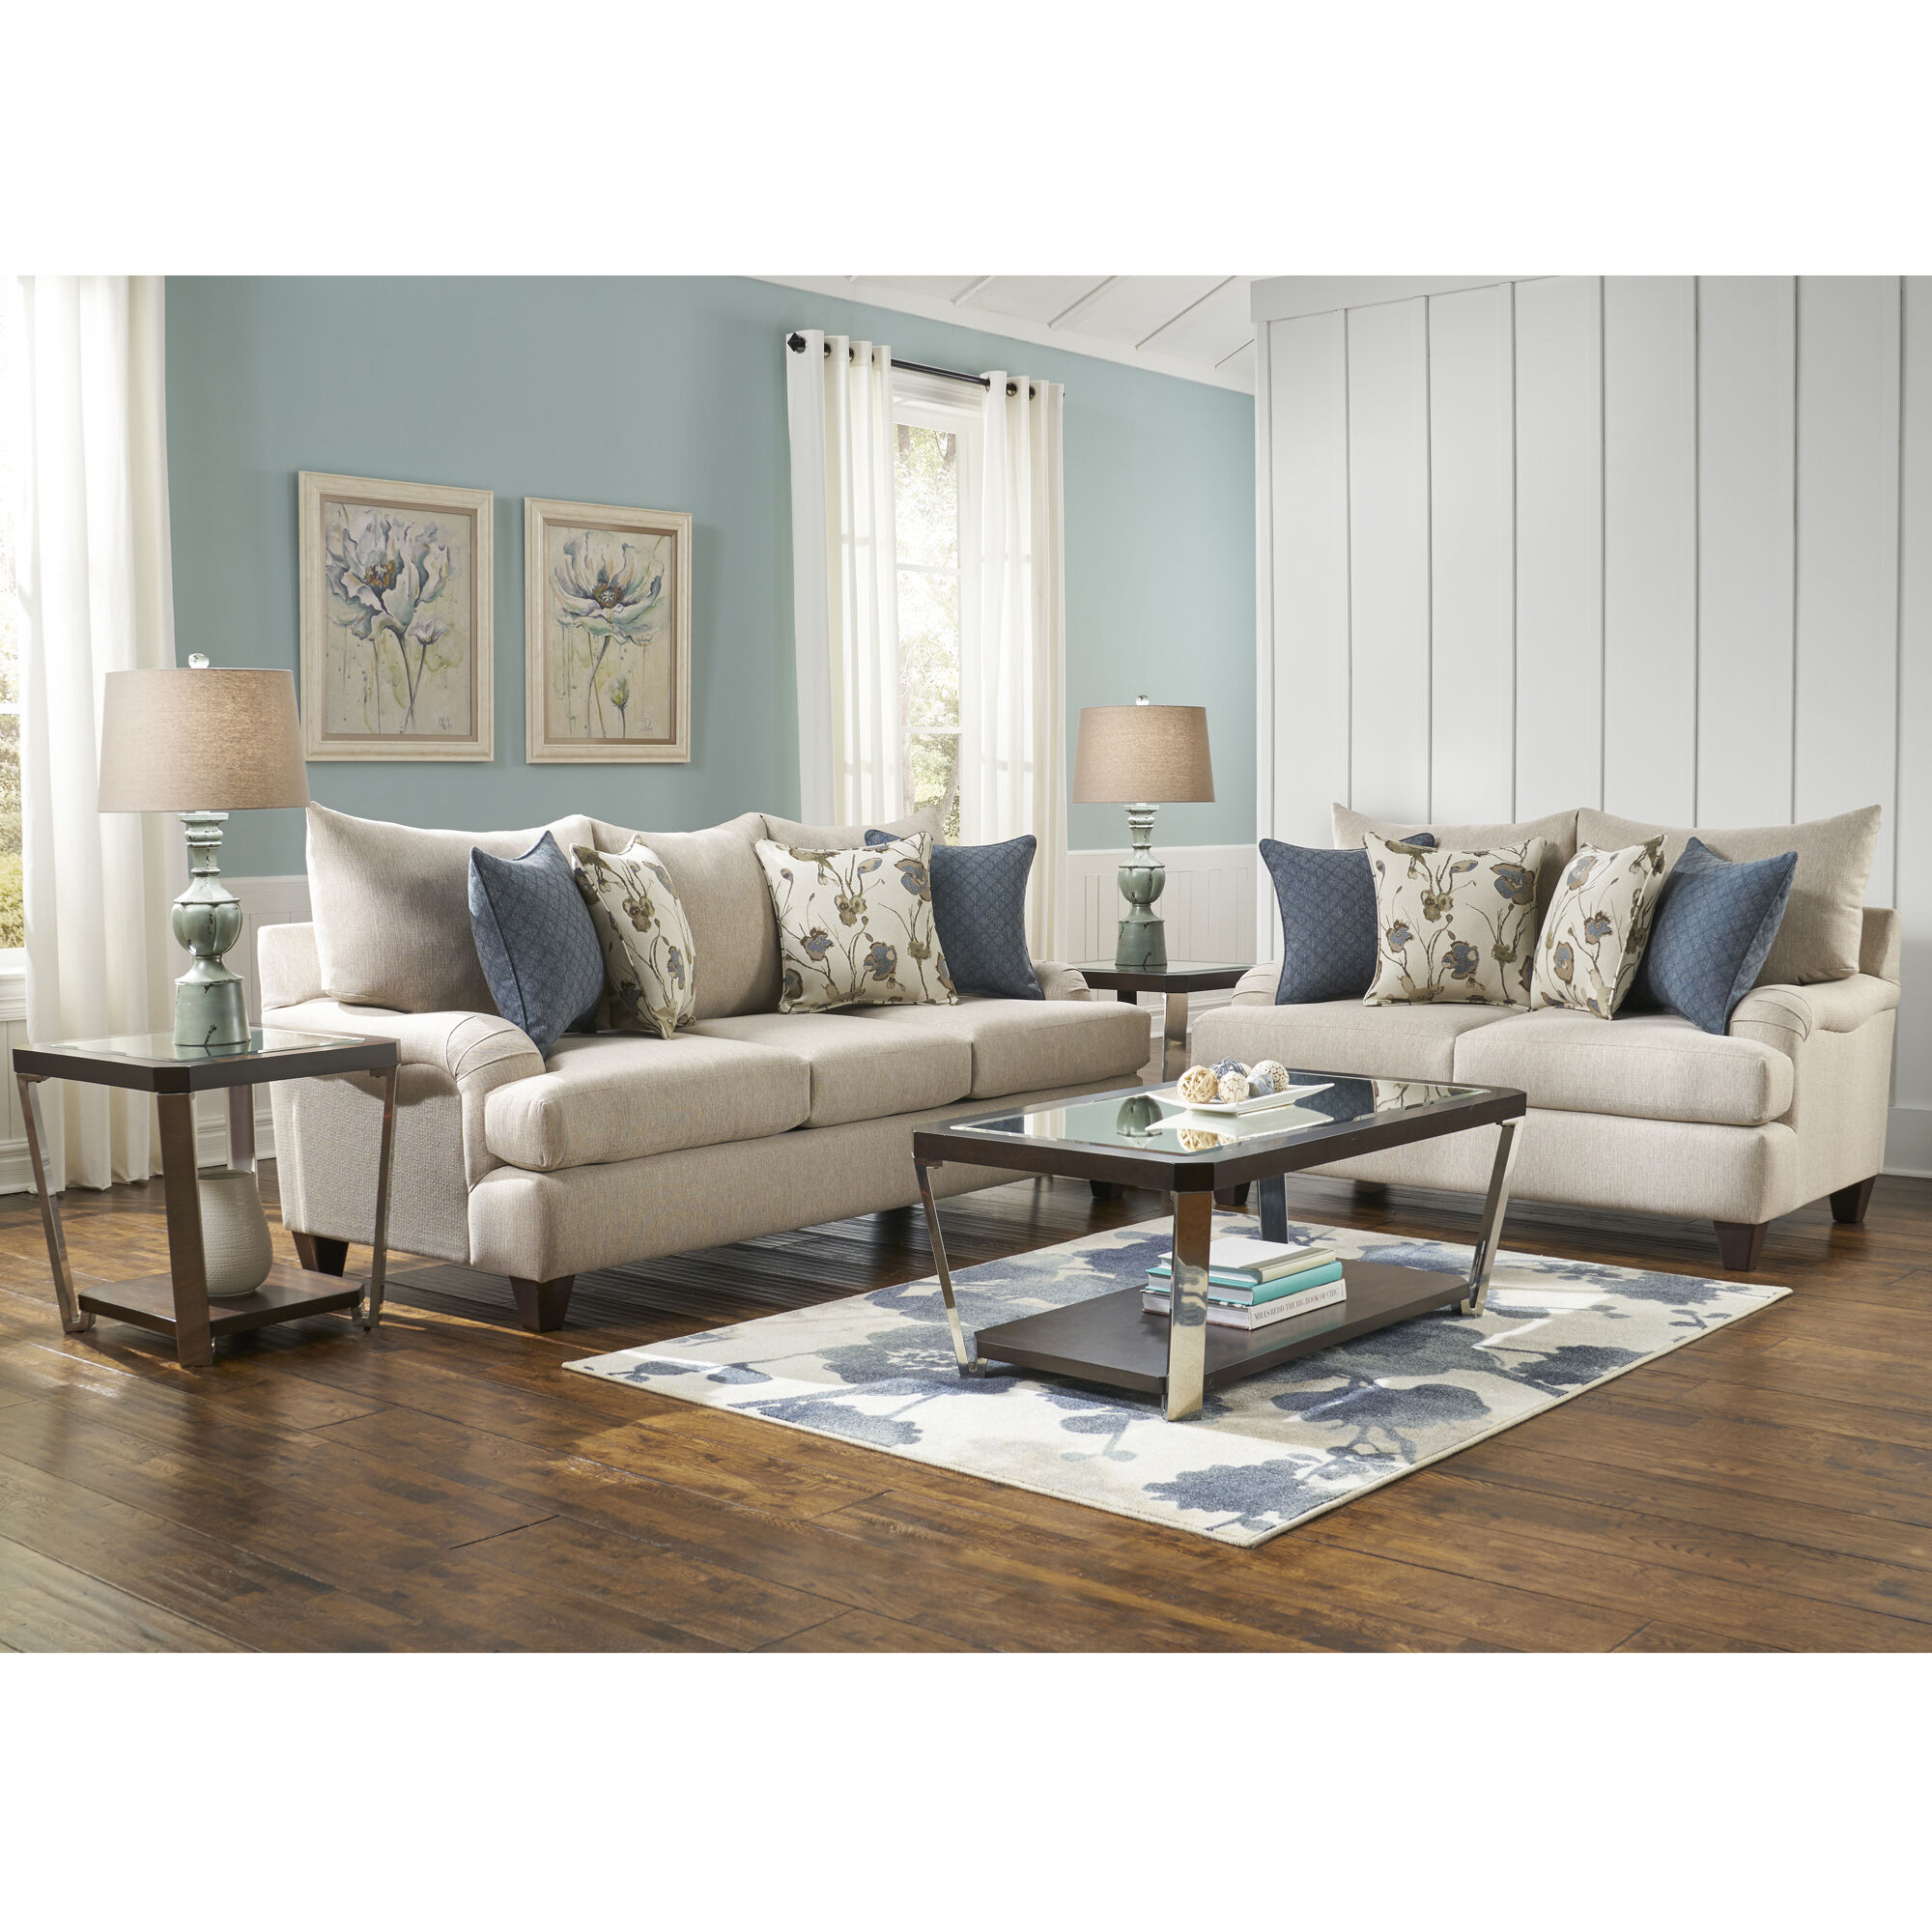 Woodhaven Industries Sofa Loveseat Sets 3Piece Vogue Living Room